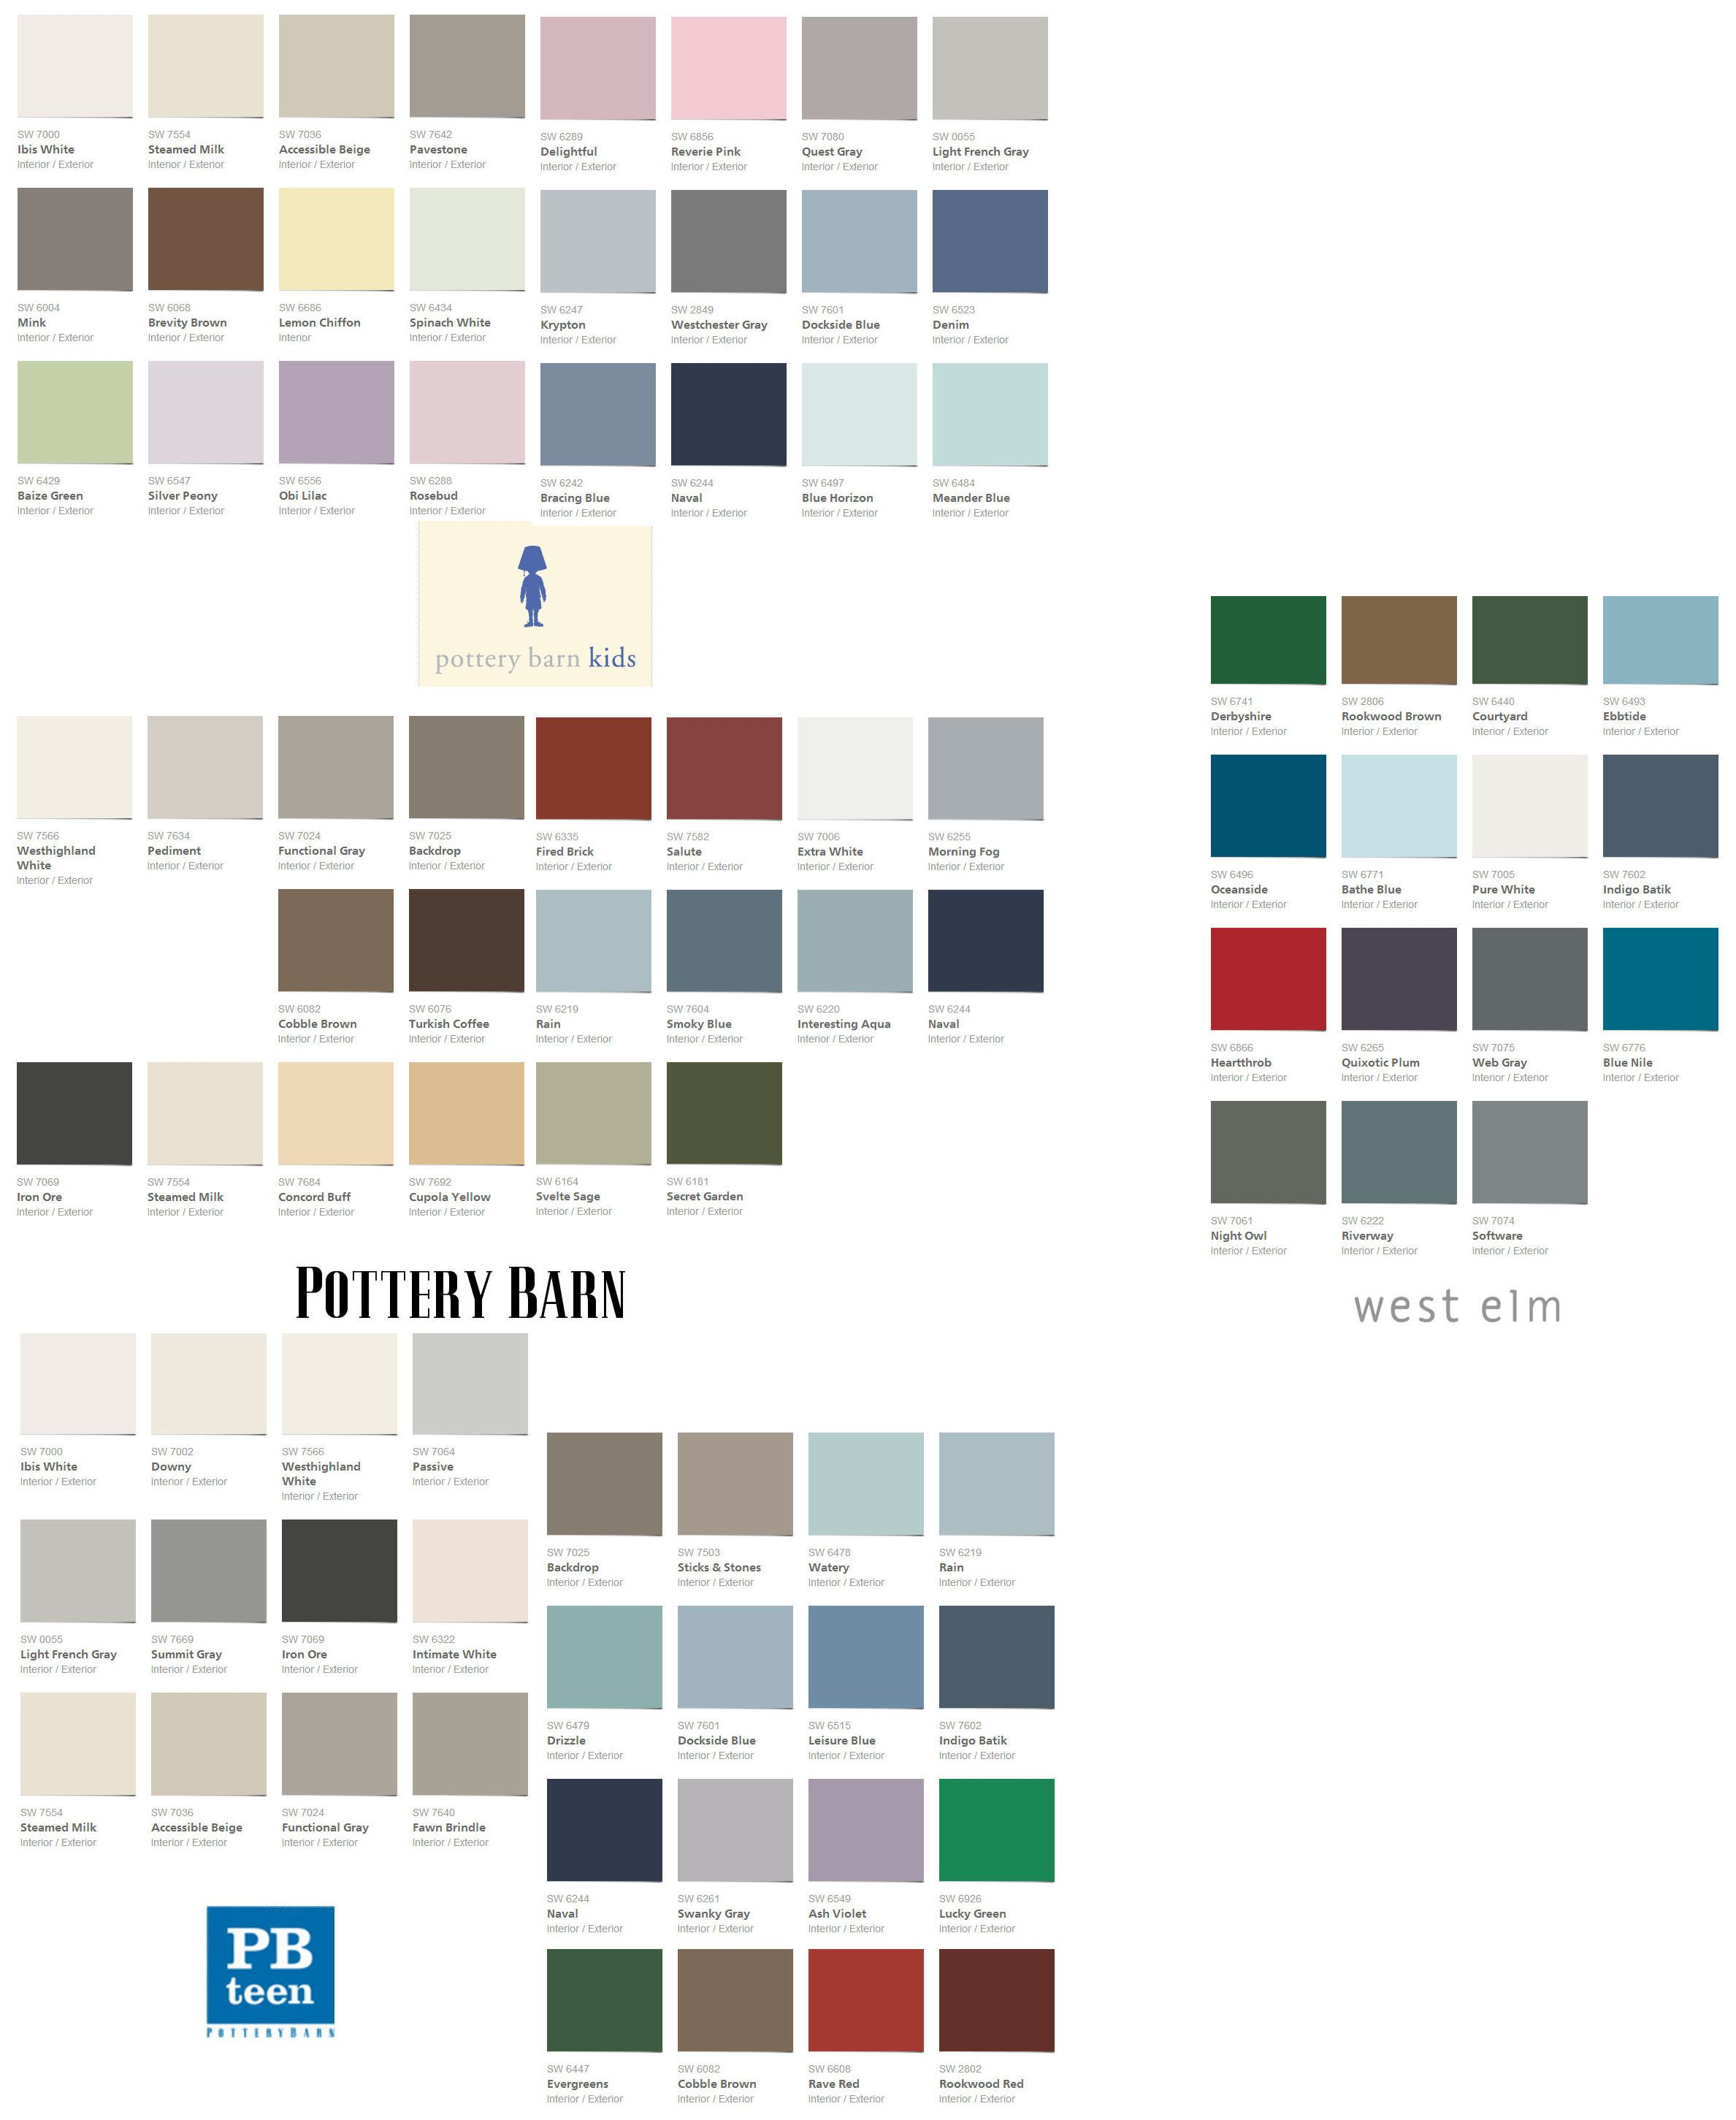 Pottery barn paint colors 2013 - 1000 Images About Colors On Pinterest Pottery Barn Kids Best Gray Paint And Colors